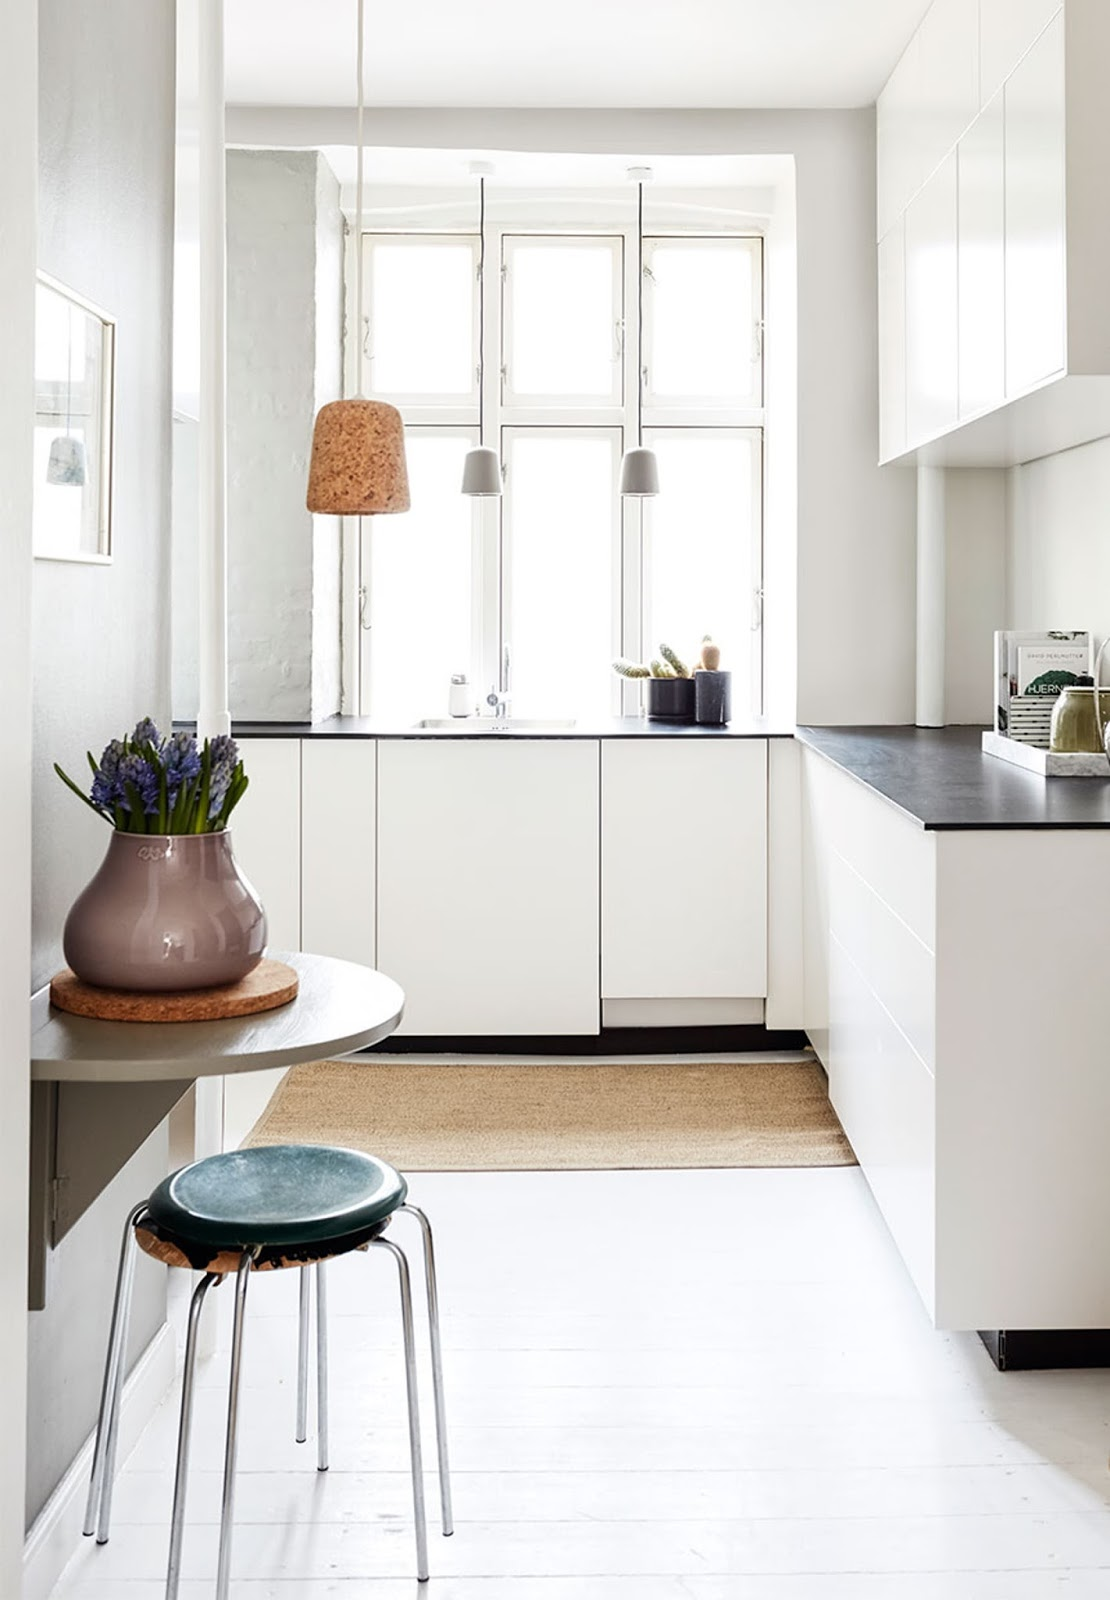 minimalist kitchen decor, danish design interior